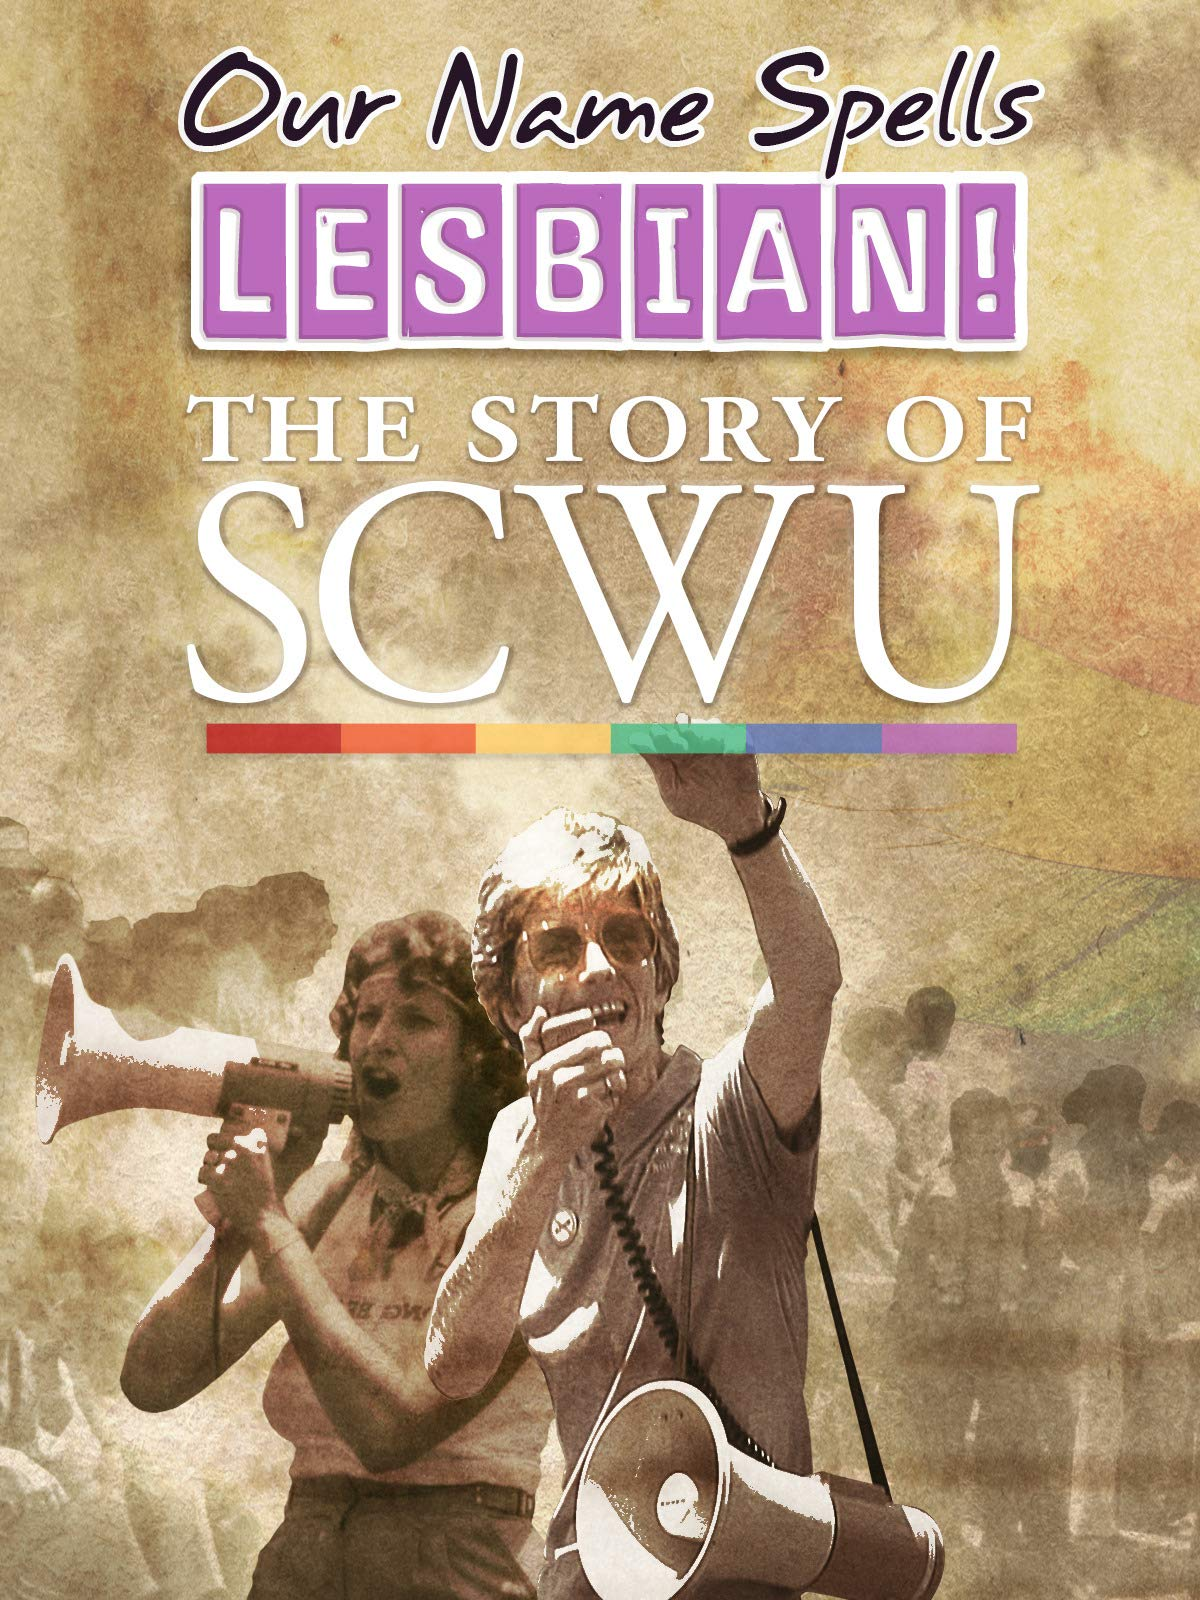 Our Name Spells Lesbian: The Story of SCWU